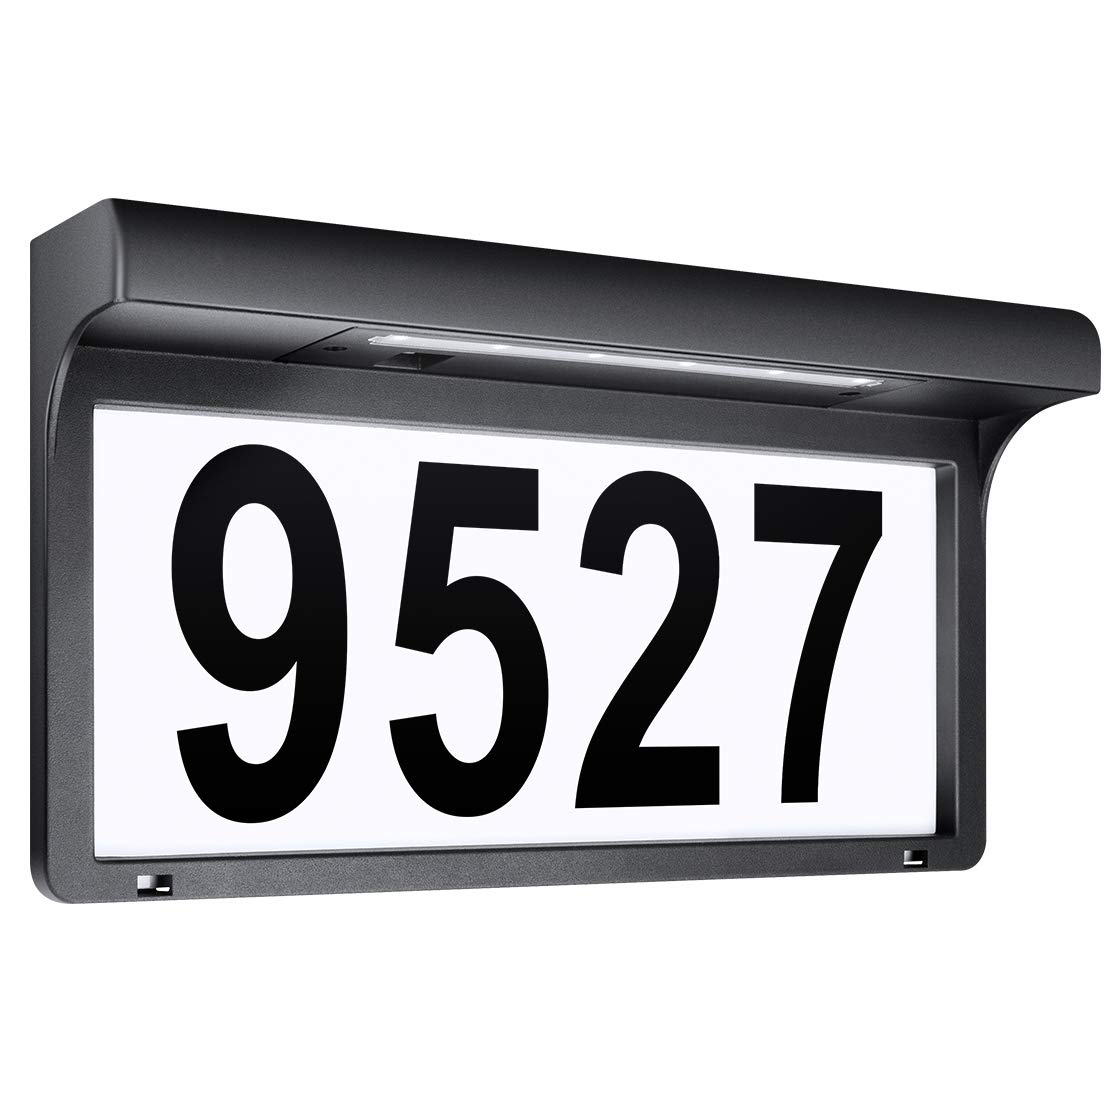 LeiDrail House Numbers Solar Powered Address Sign LED Illuminated Outdoor Metal Plaque Lighted Up for Home Yard Street by LeiDrail